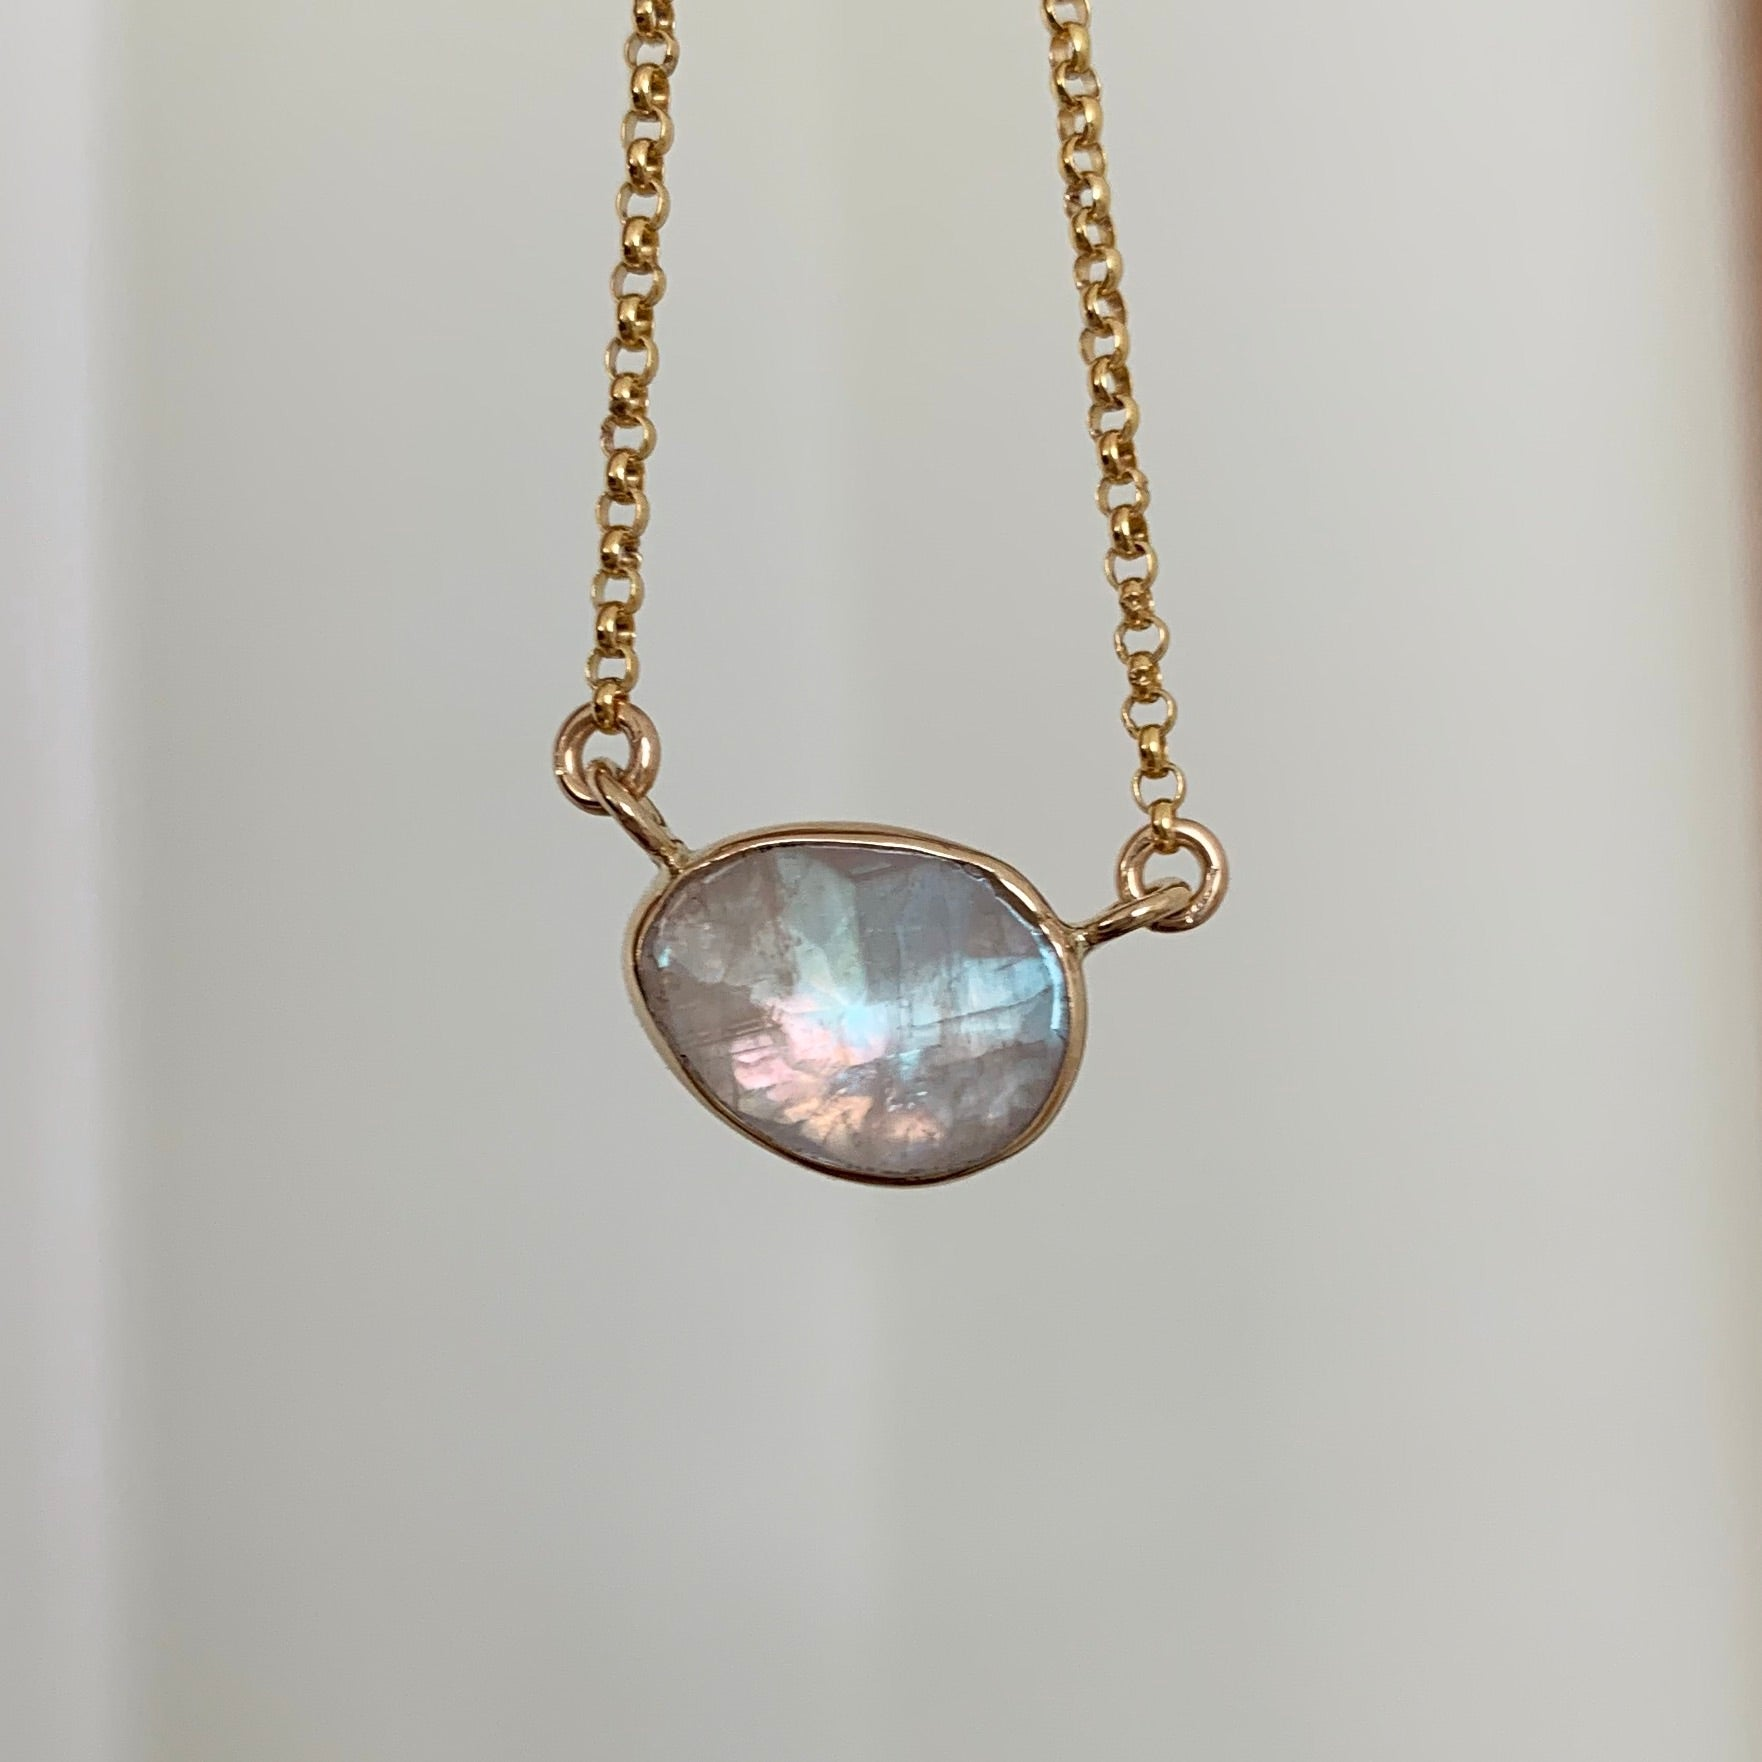 Faceted moonstone necklace - gold